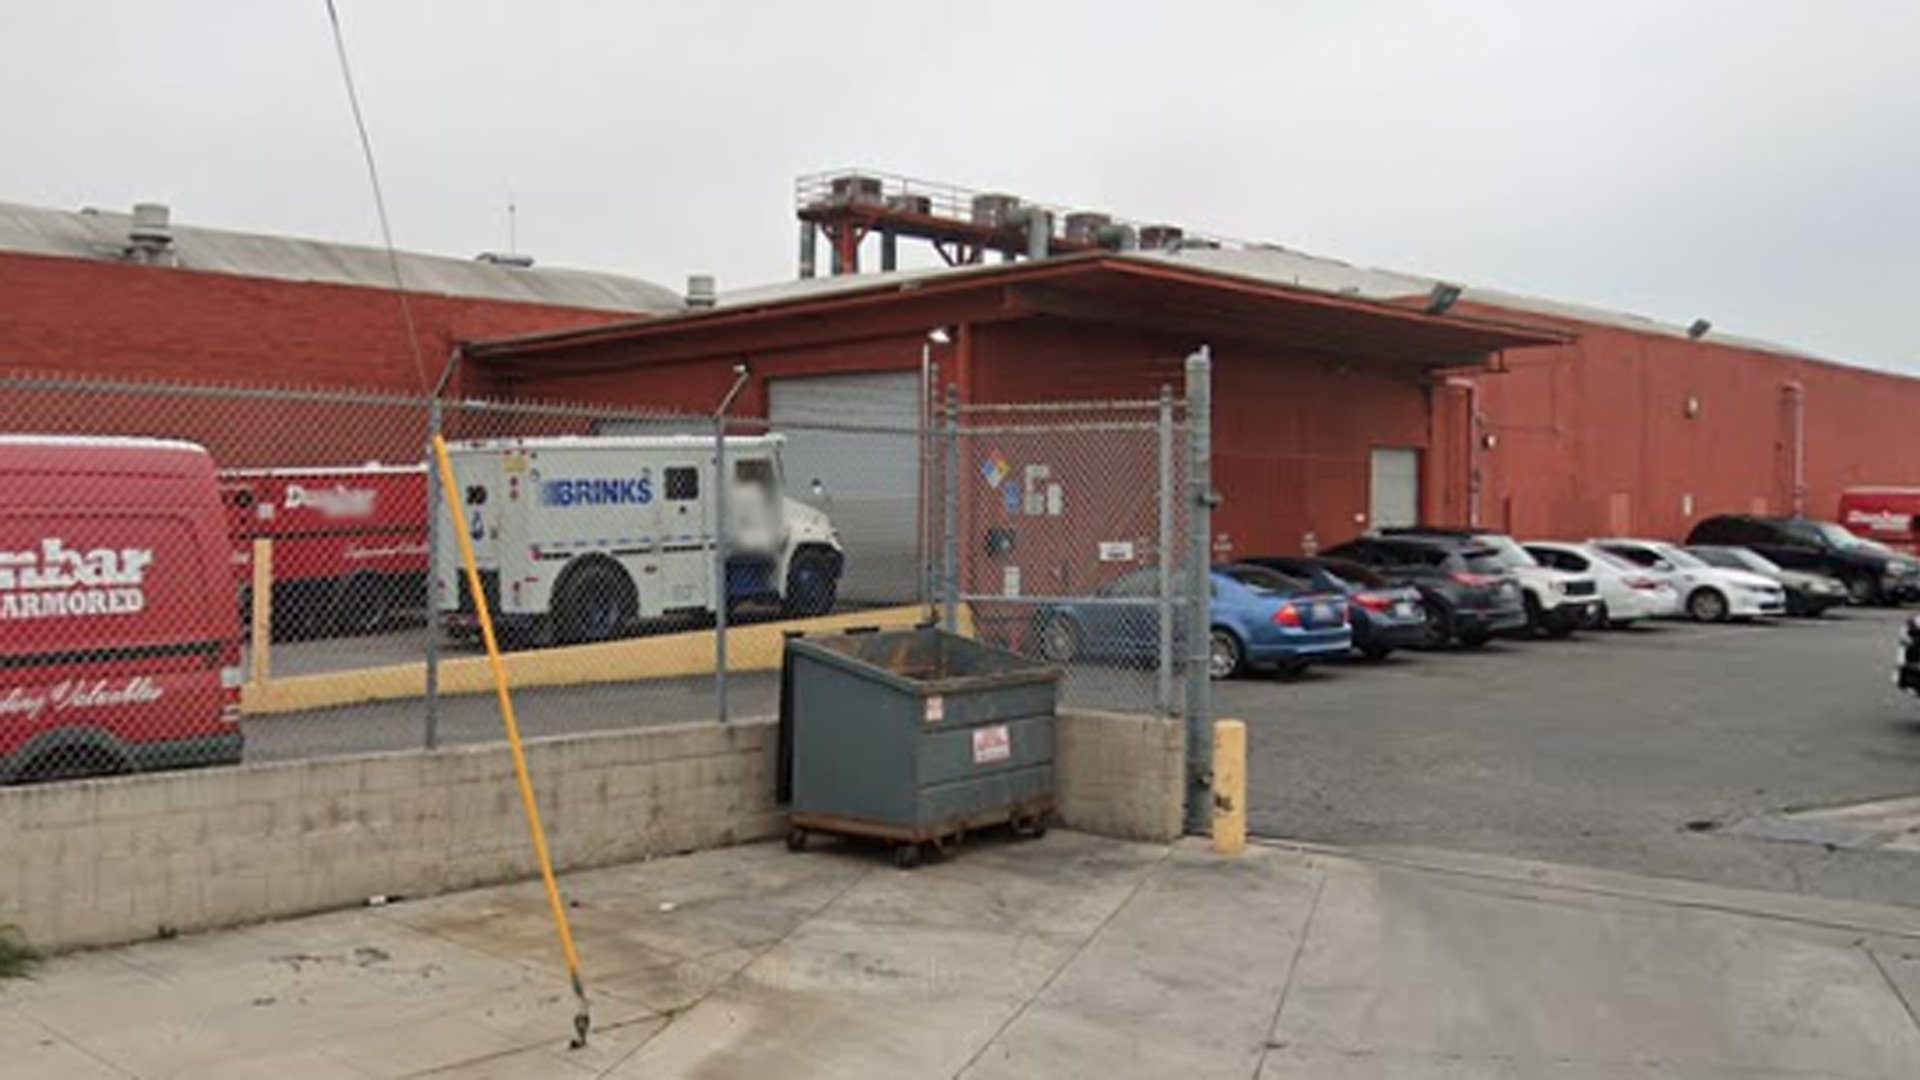 The Dunbar Armored storage facility in Vernon is seen in a Google Maps Street View image.